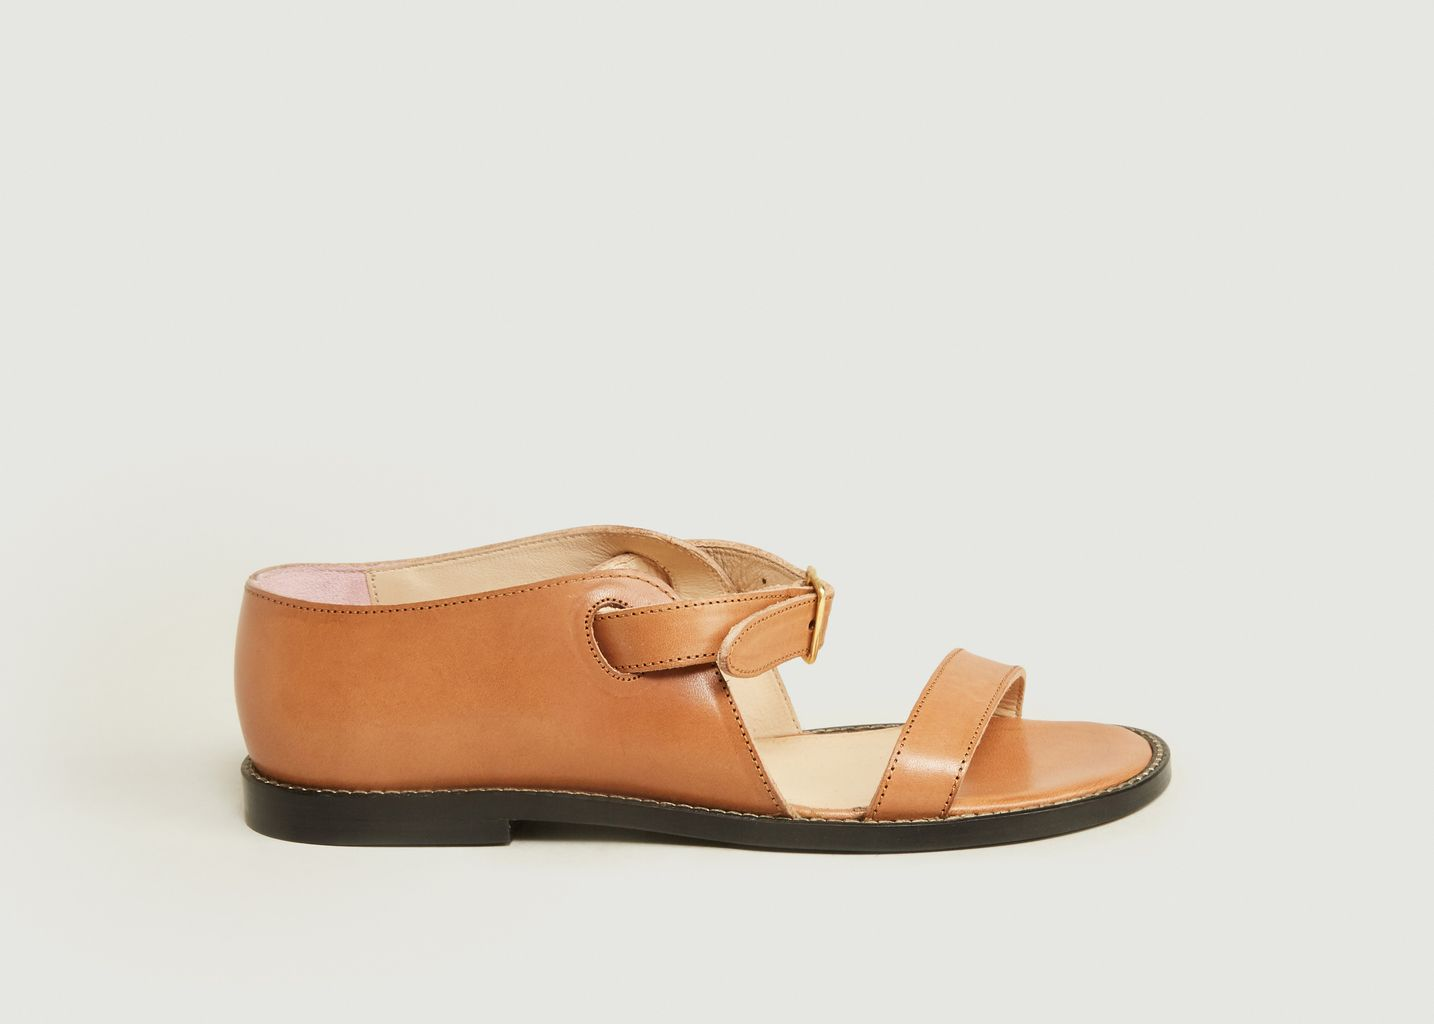 Marques Chaussure femme An Hour And A Shower femme Miso Tobacco